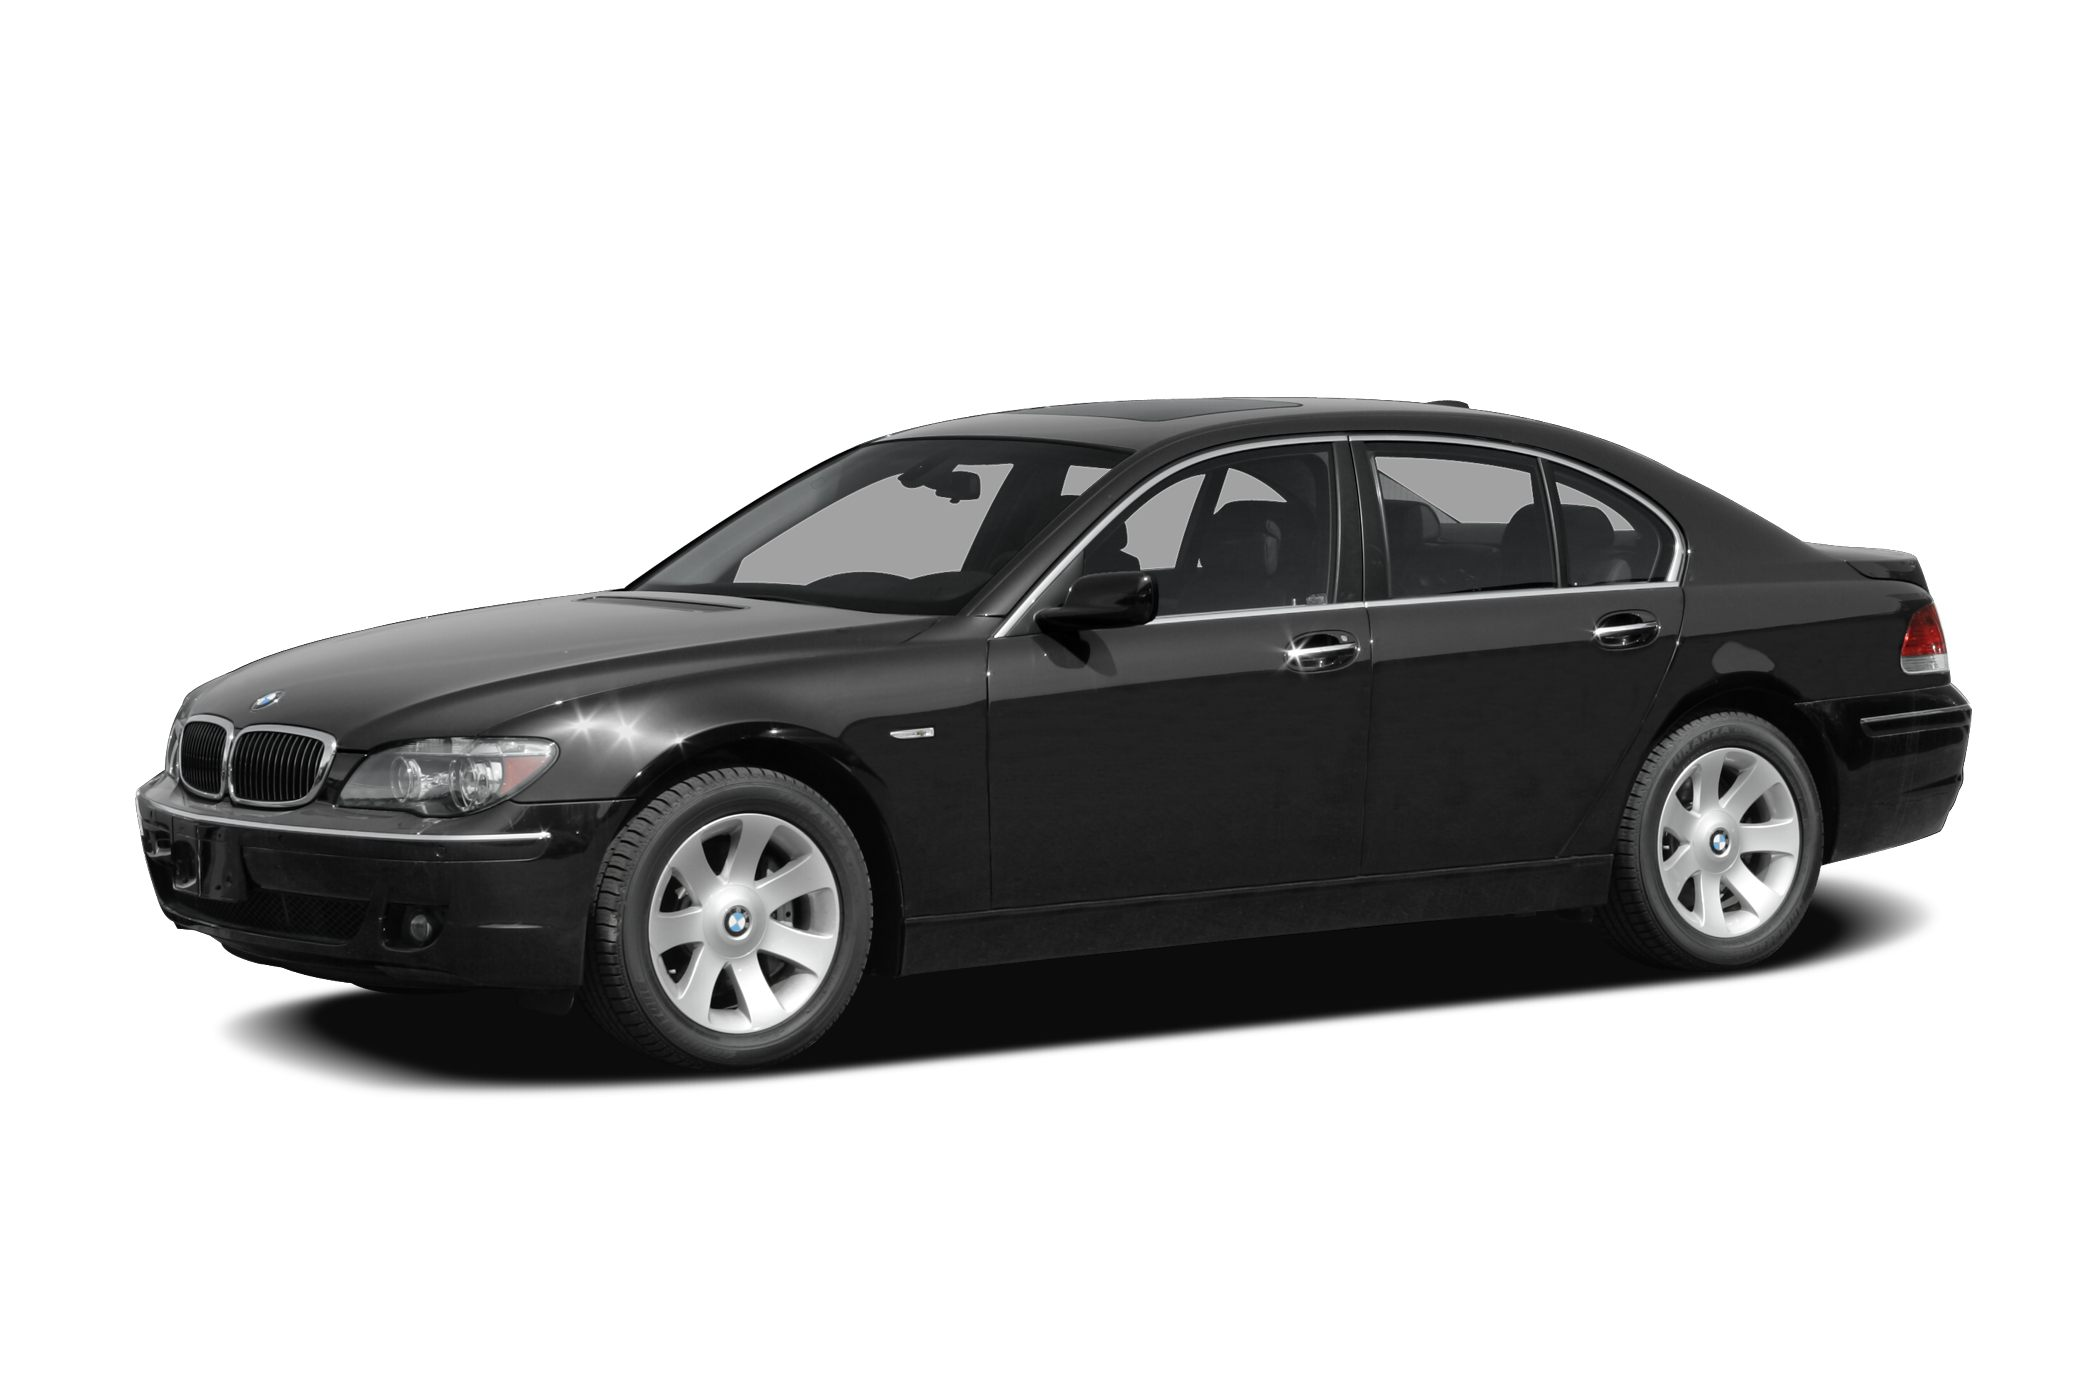 2008 BMW 750 Li Sedan for sale in Londonderry for $21,995 with 85,175 miles